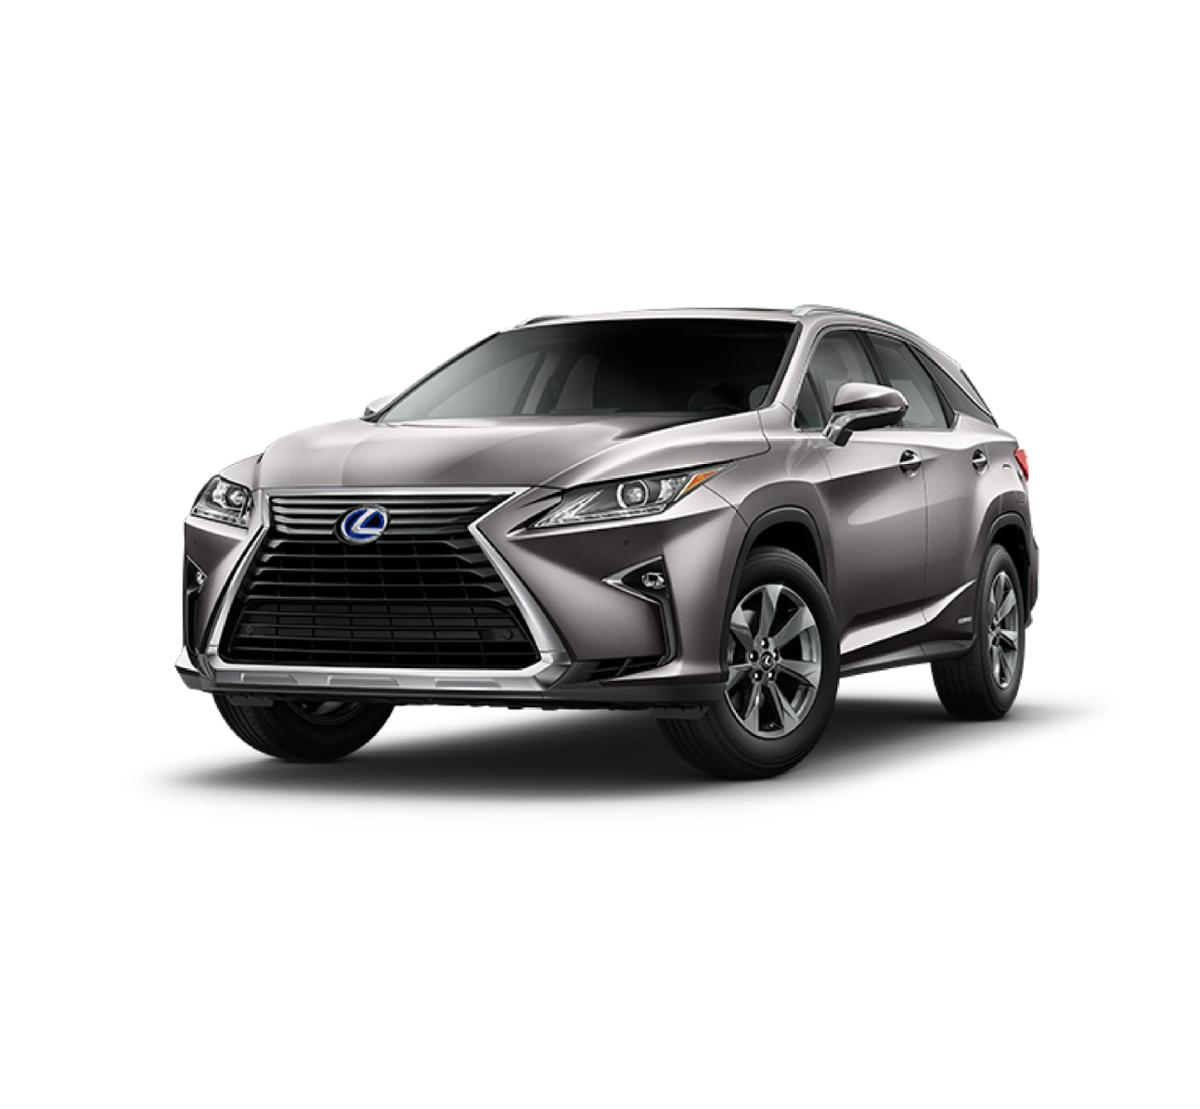 2018 Lexus RX 450hL Vehicle Photo in Modesto, CA 95356